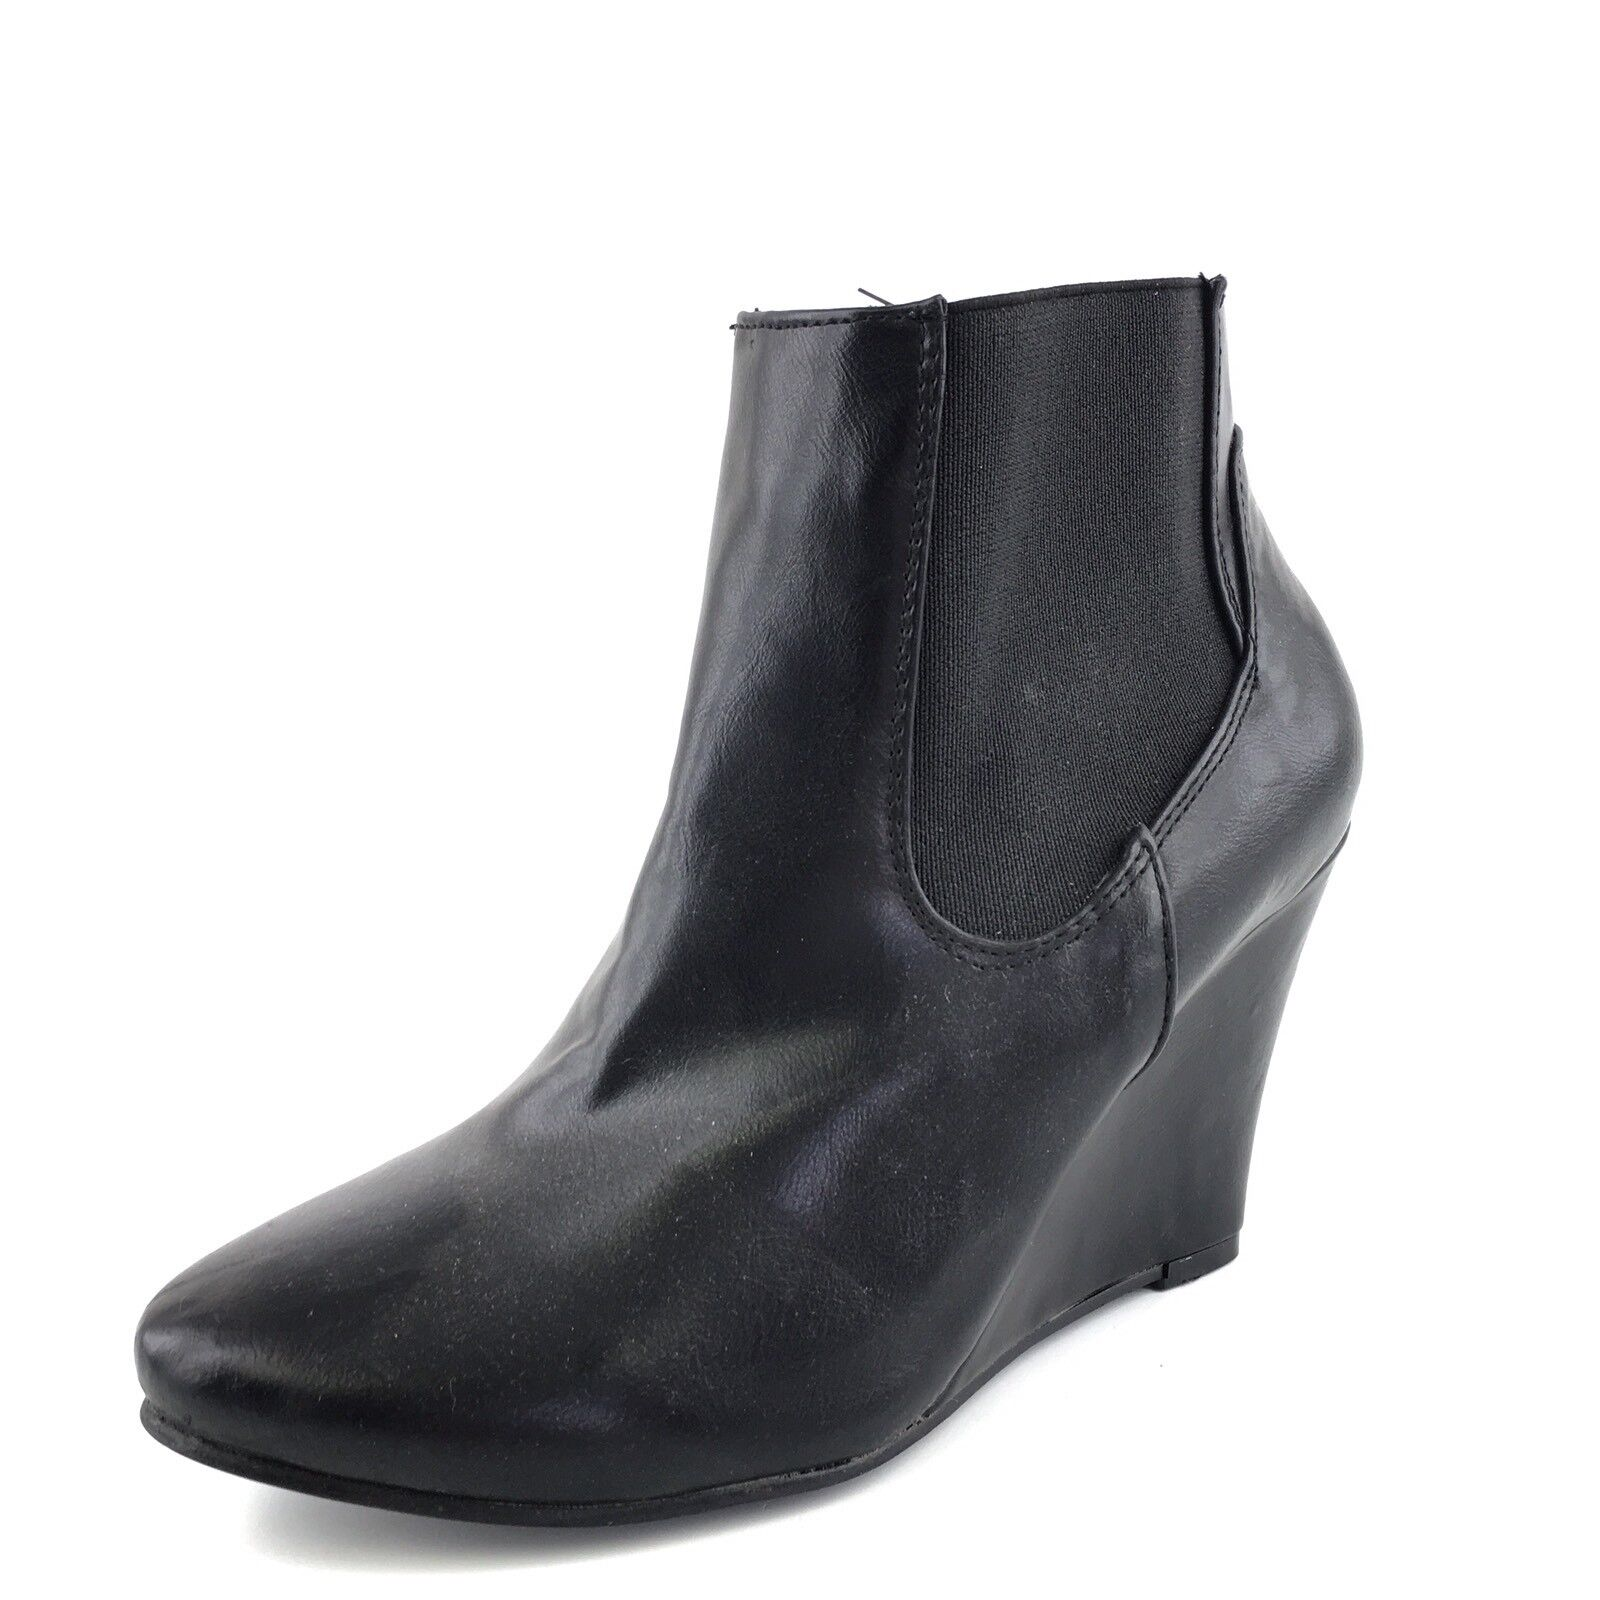 New AXNY Black Leather Wedge Chelsea Ankle Boots Women's Size 8.5 M